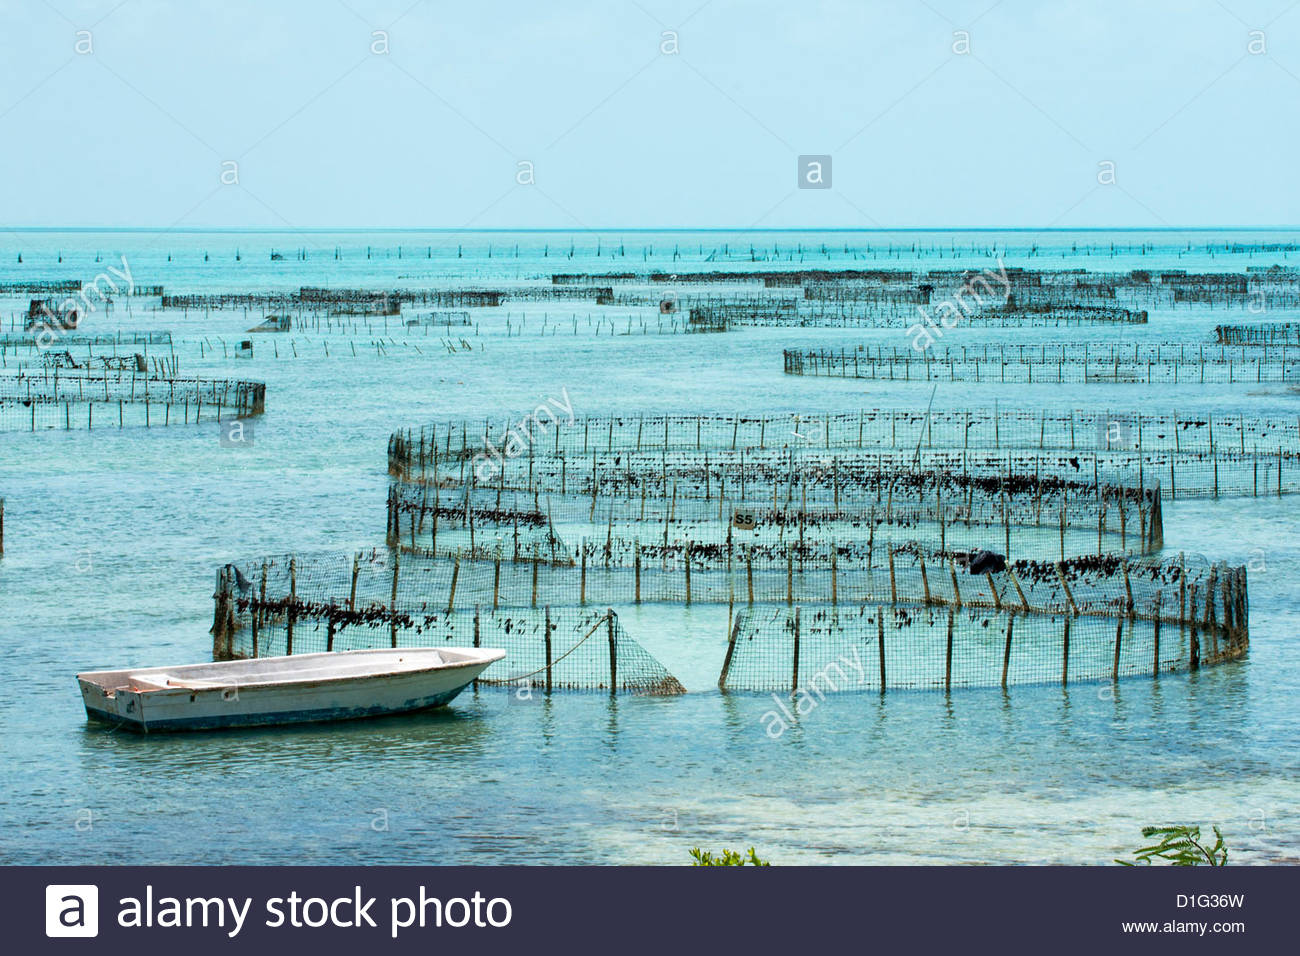 Off-shore ponds, Conch farm, Providenciales, Caicos, Turks and Caicos Islands, West Indies, Caribbean, Central America - Stock Image